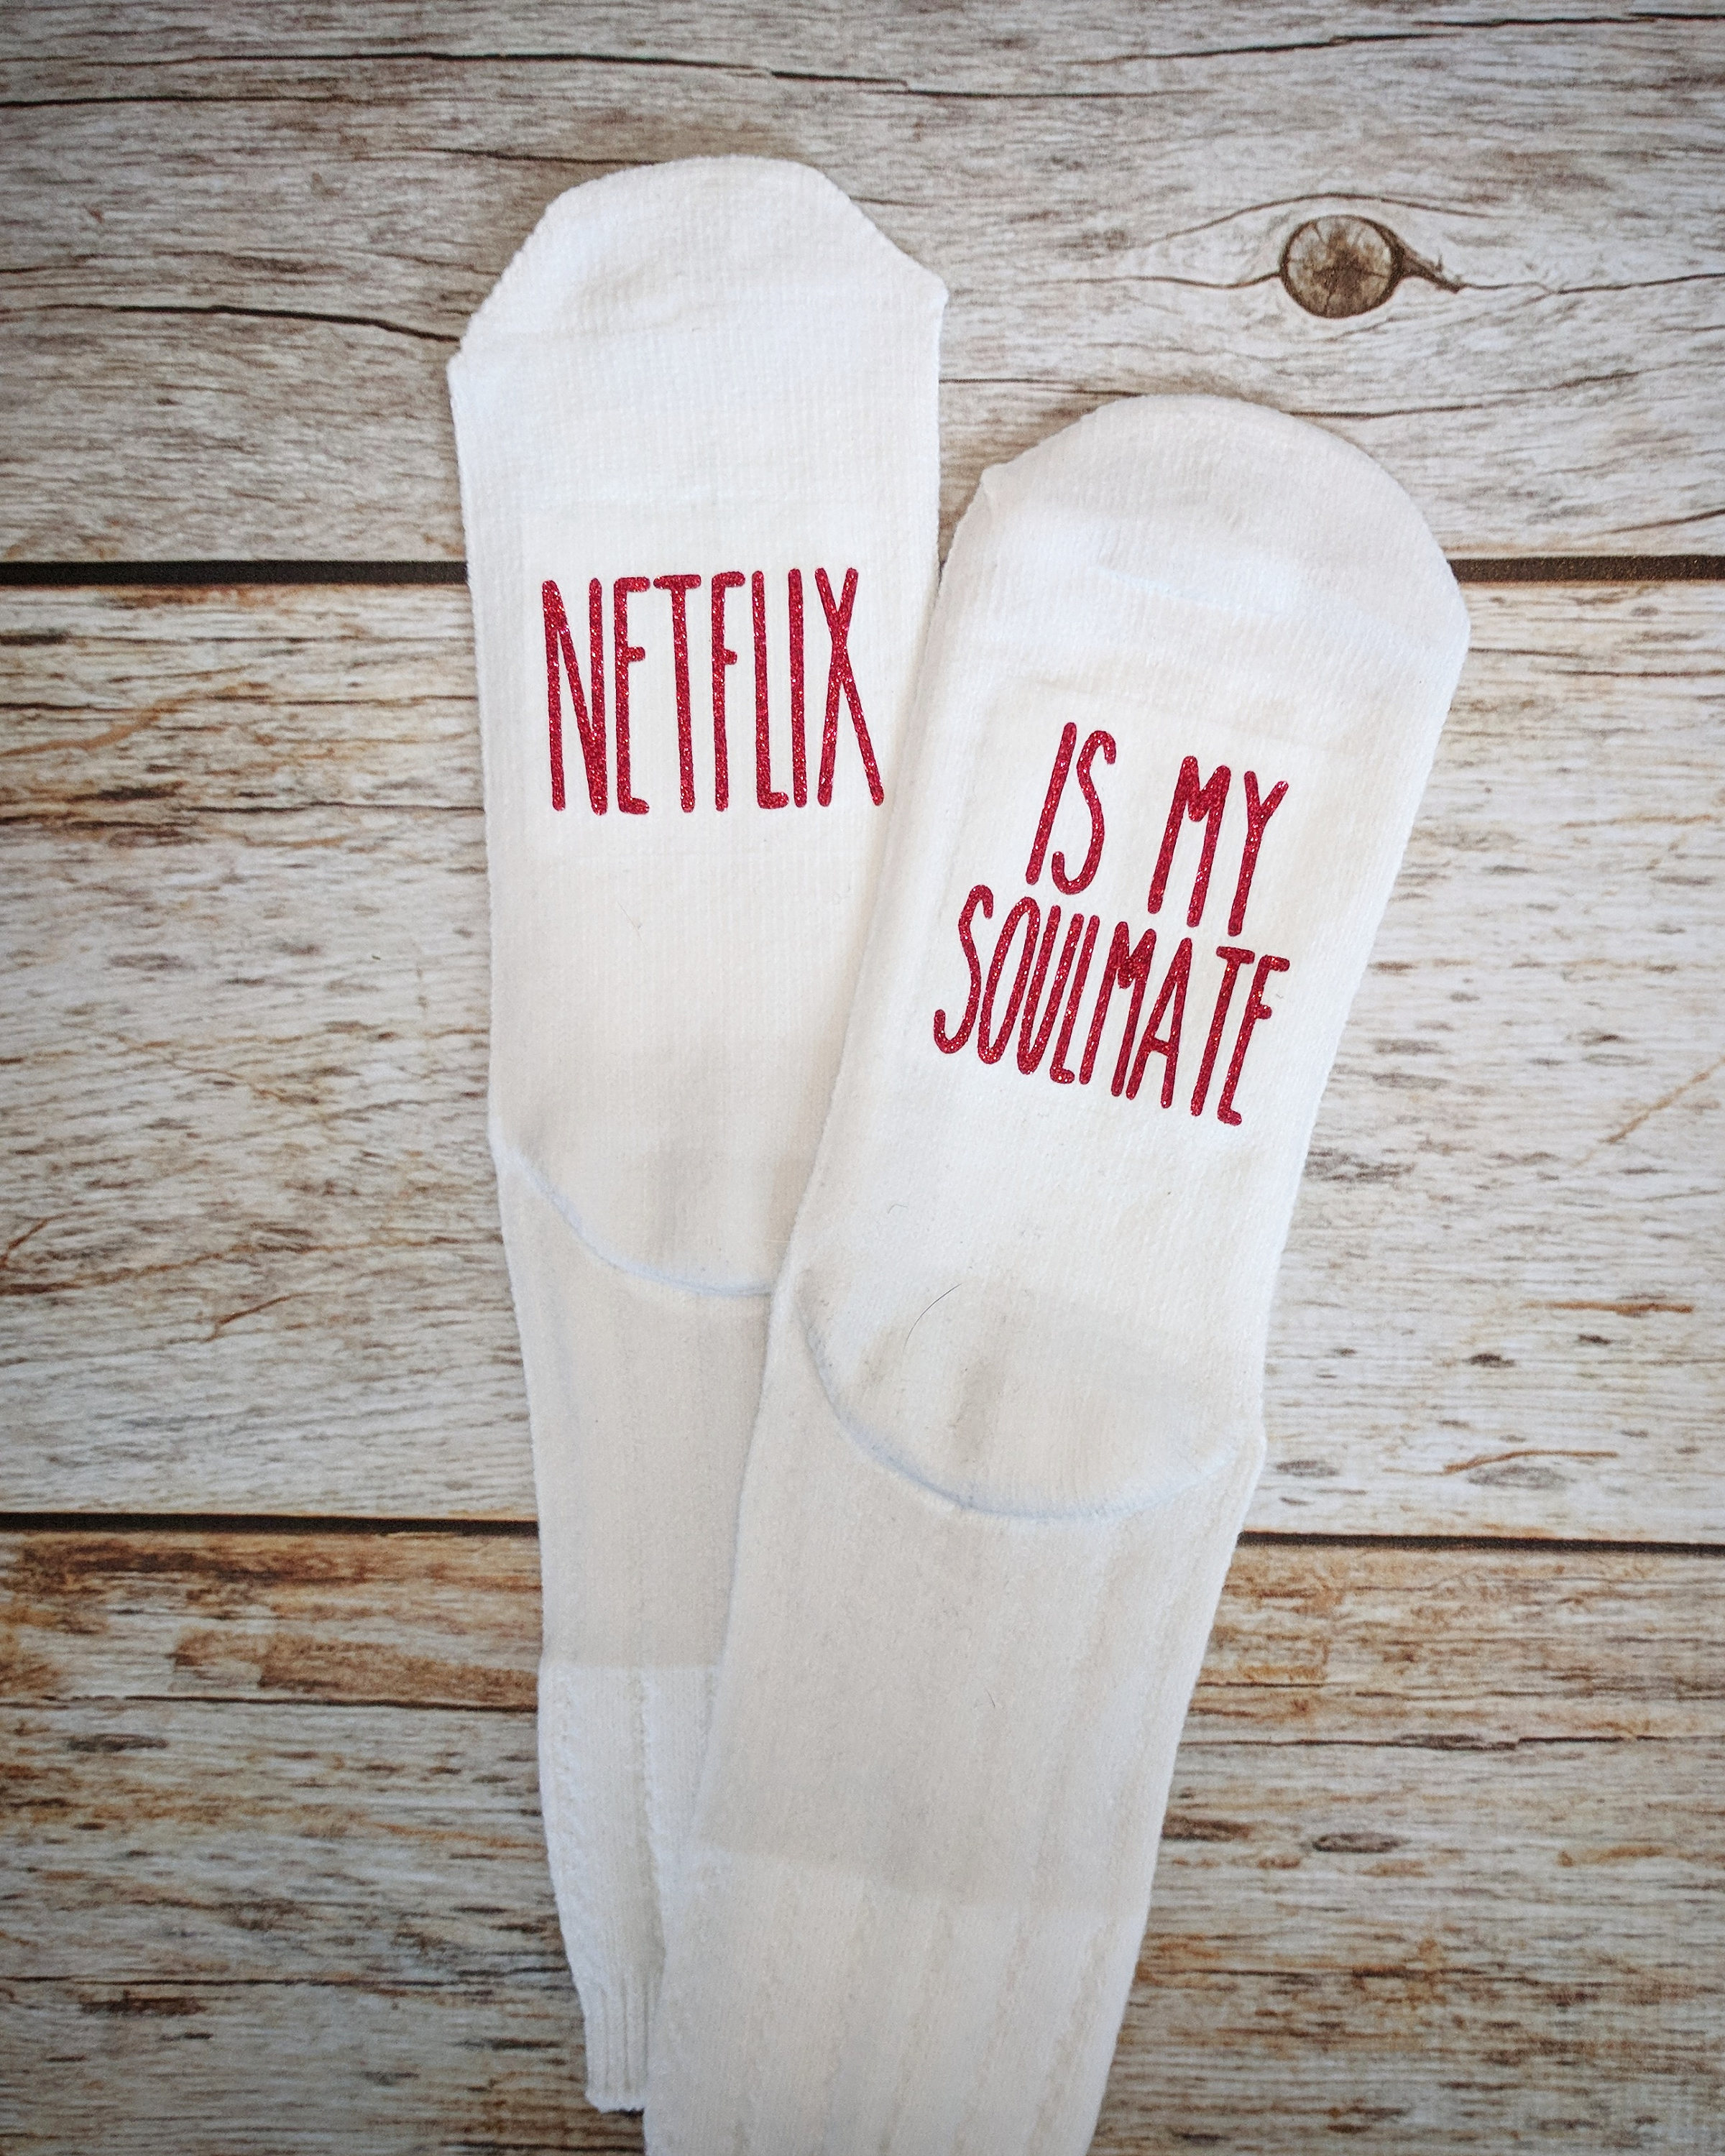 Netflix socks from 2troubleboys Etsy // Price: $12.95 // (Image: 2troubleboys // http://etsy.me/2nIT9xy)